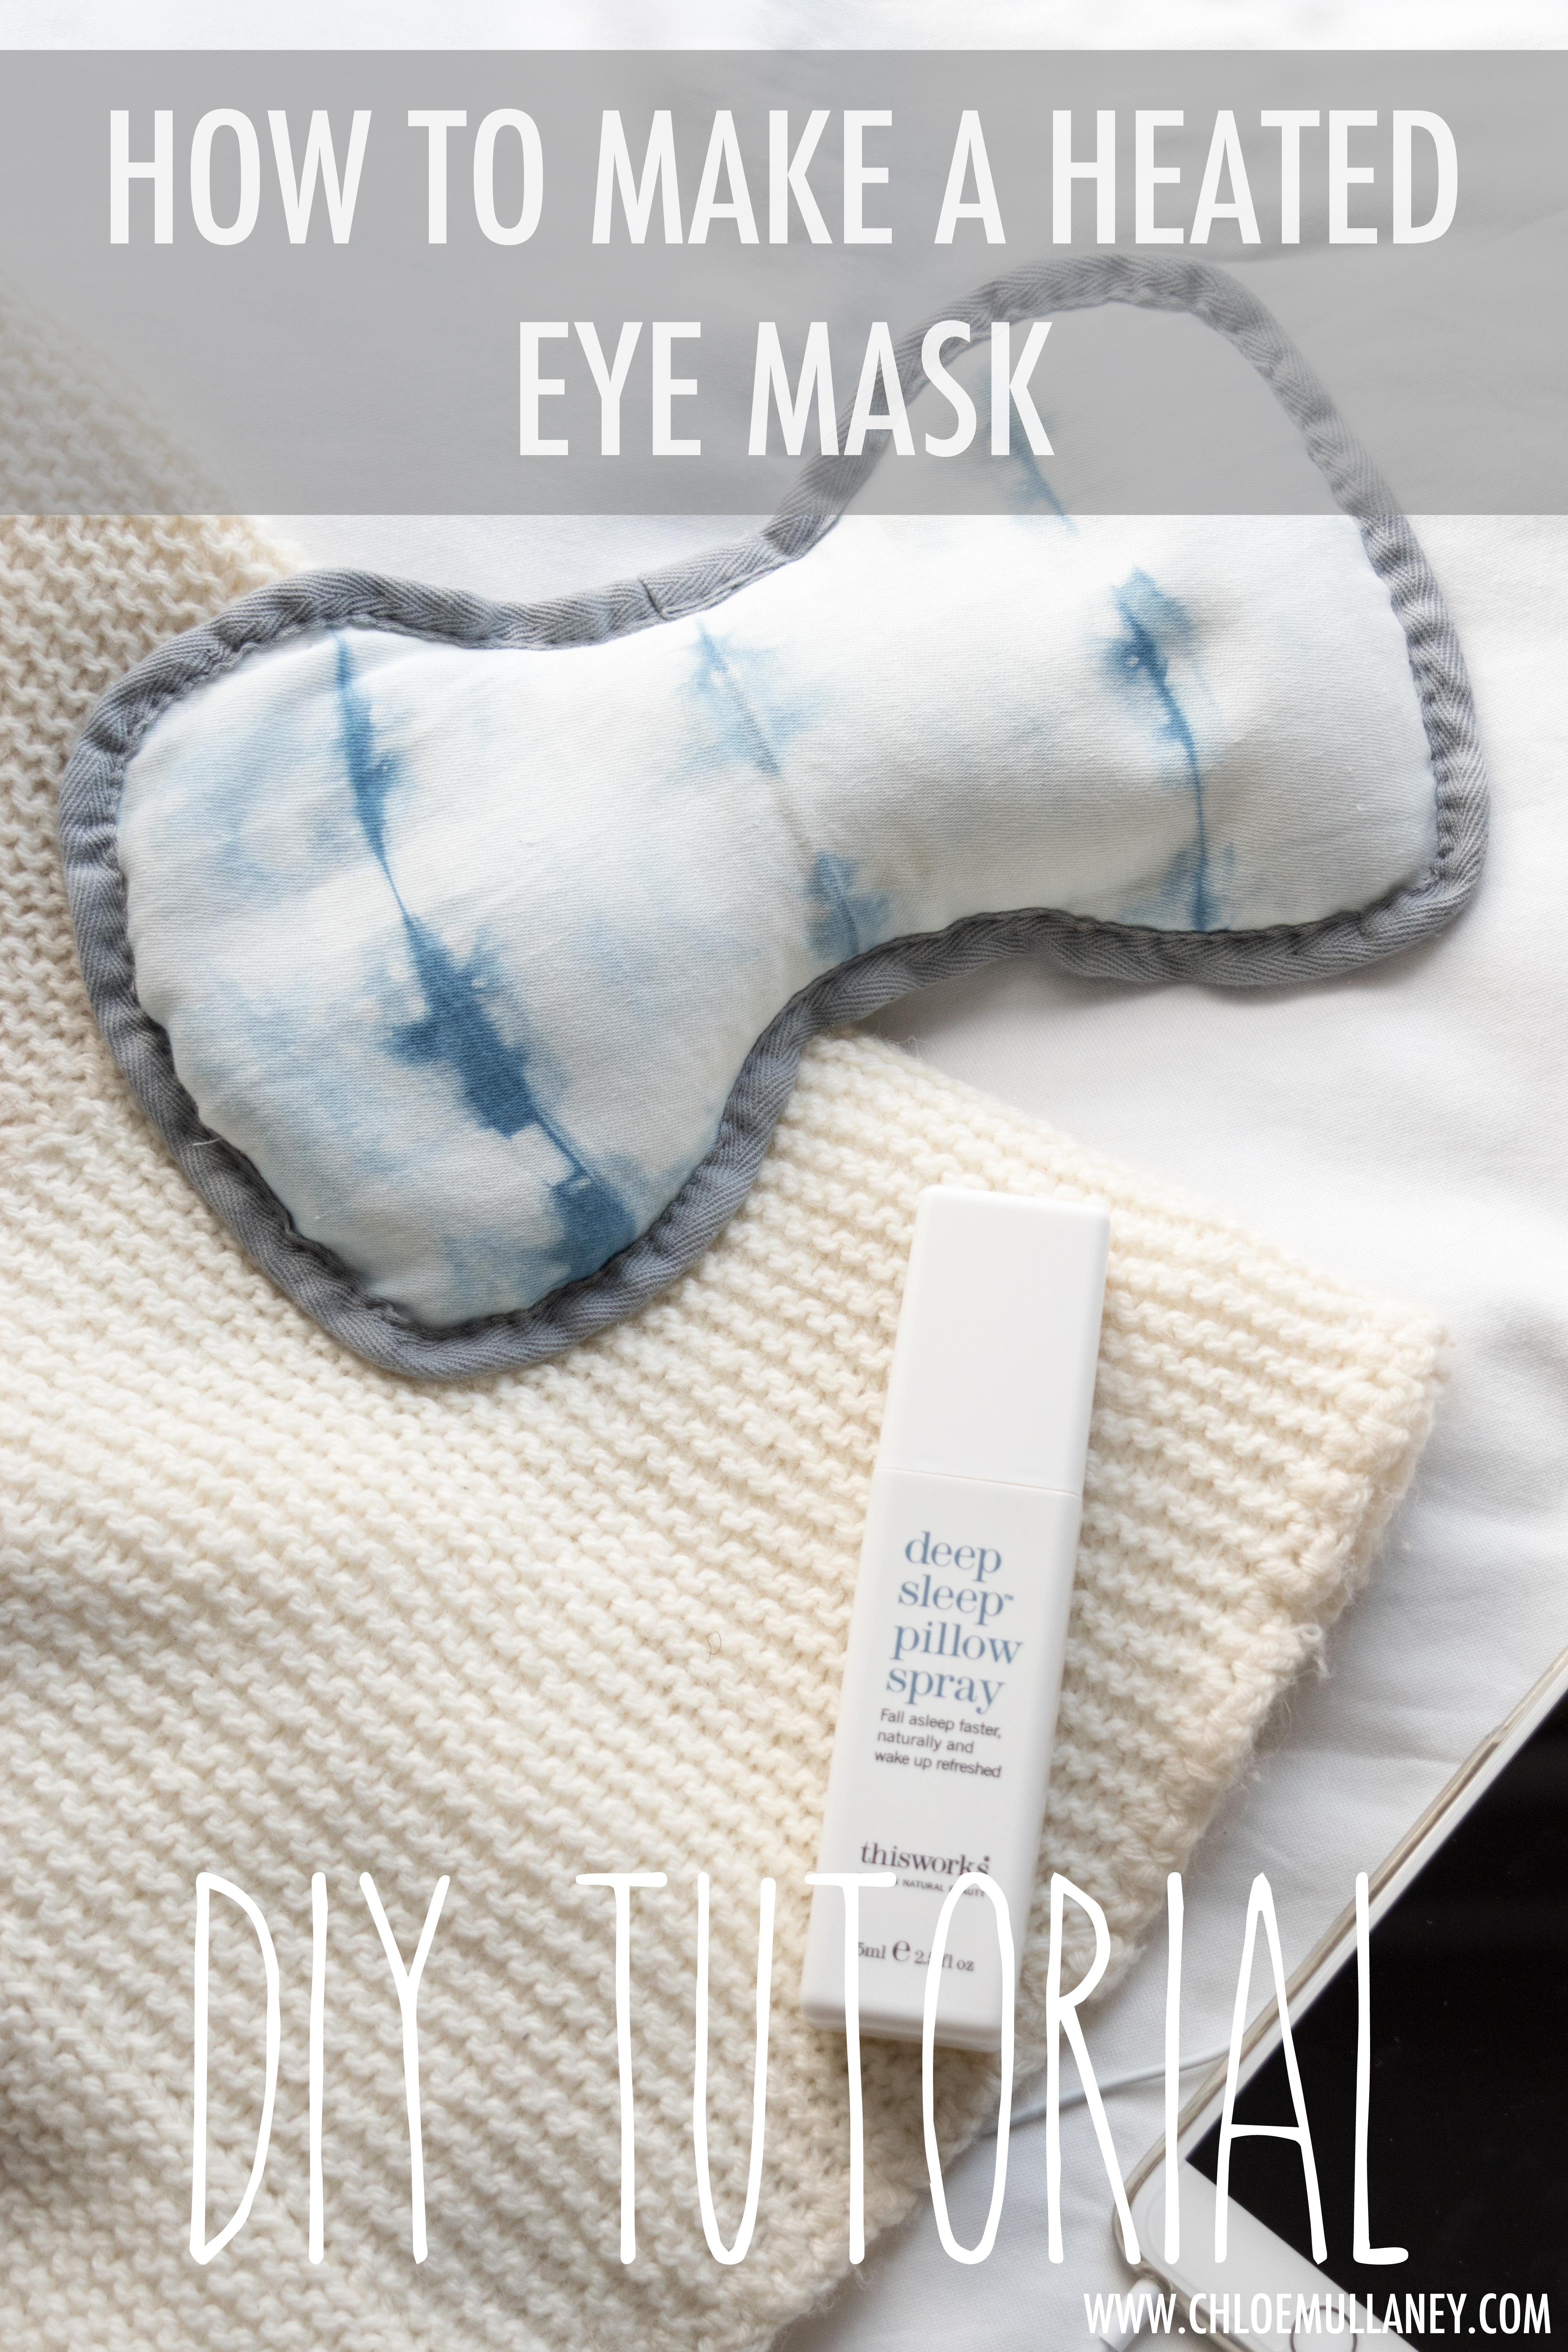 Image shows a handmade heated eye mask made of hand-dyed shibori fabric promoting a tutorial designed to enable people to create this product at home.